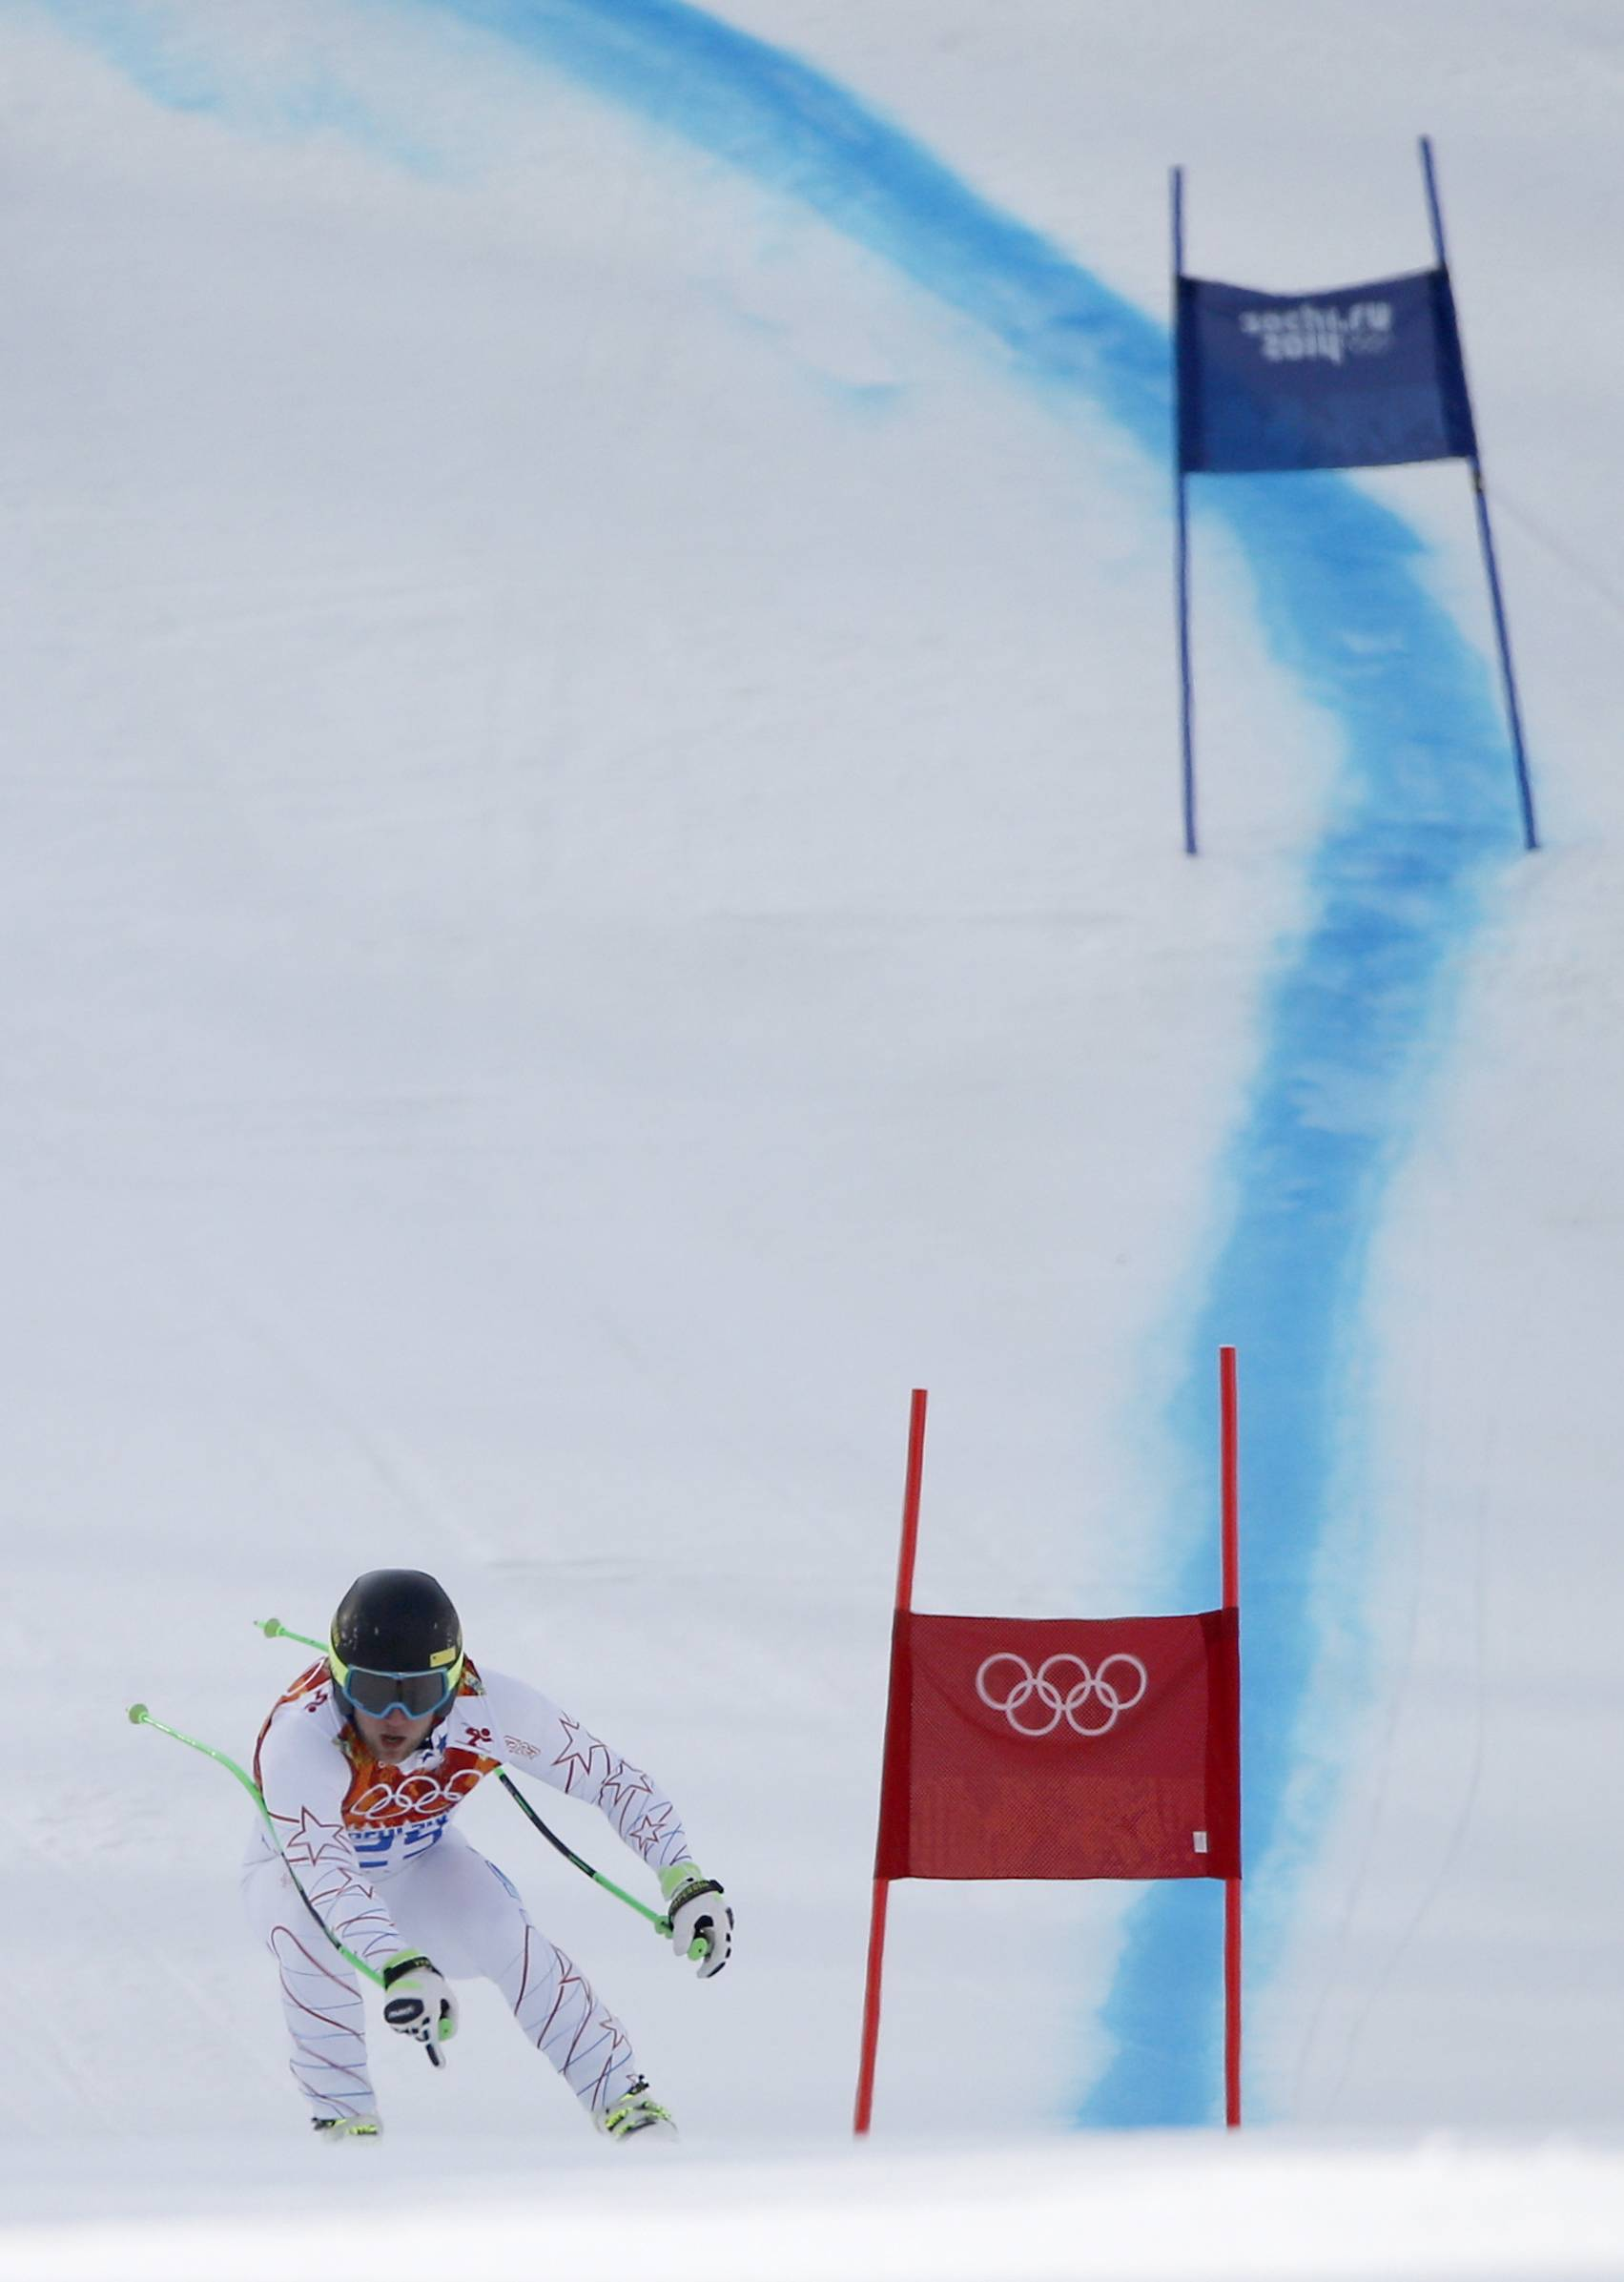 United States' Andrew Weibrecht passes a gate near the finish line on his way to taking the silver medal in the men's super-G at the Sochi 2014 Winter Olympics, Sunday, Feb. 16, 2014, in Krasnaya Polyana, Russia.